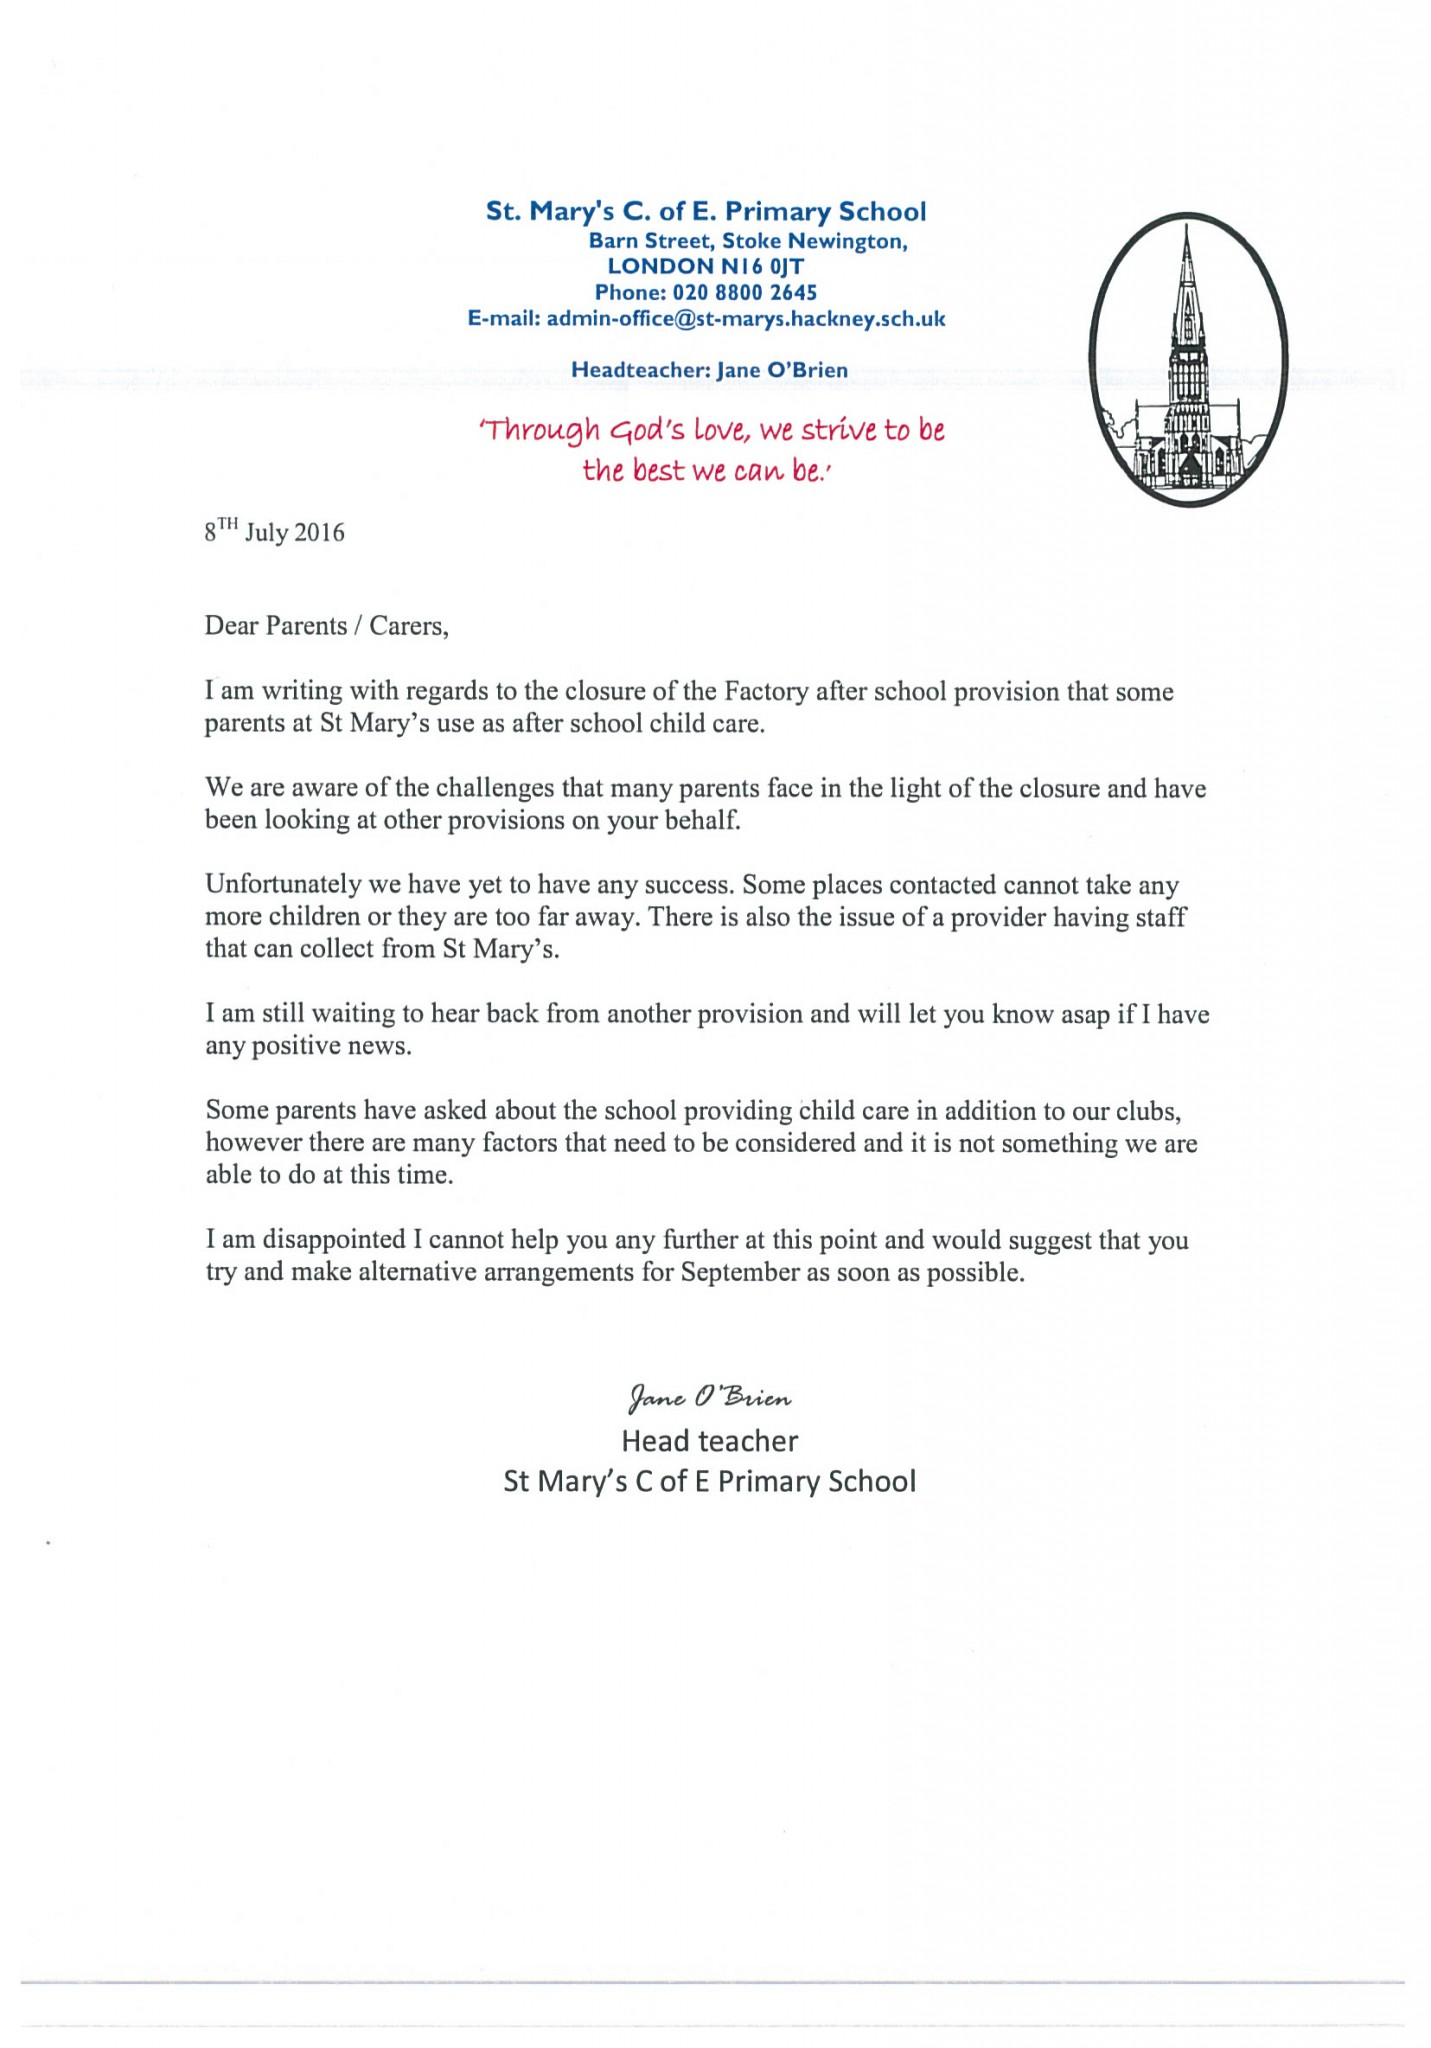 Teacher Resignation Letter To Parents from st-marys.hackney.sch.uk